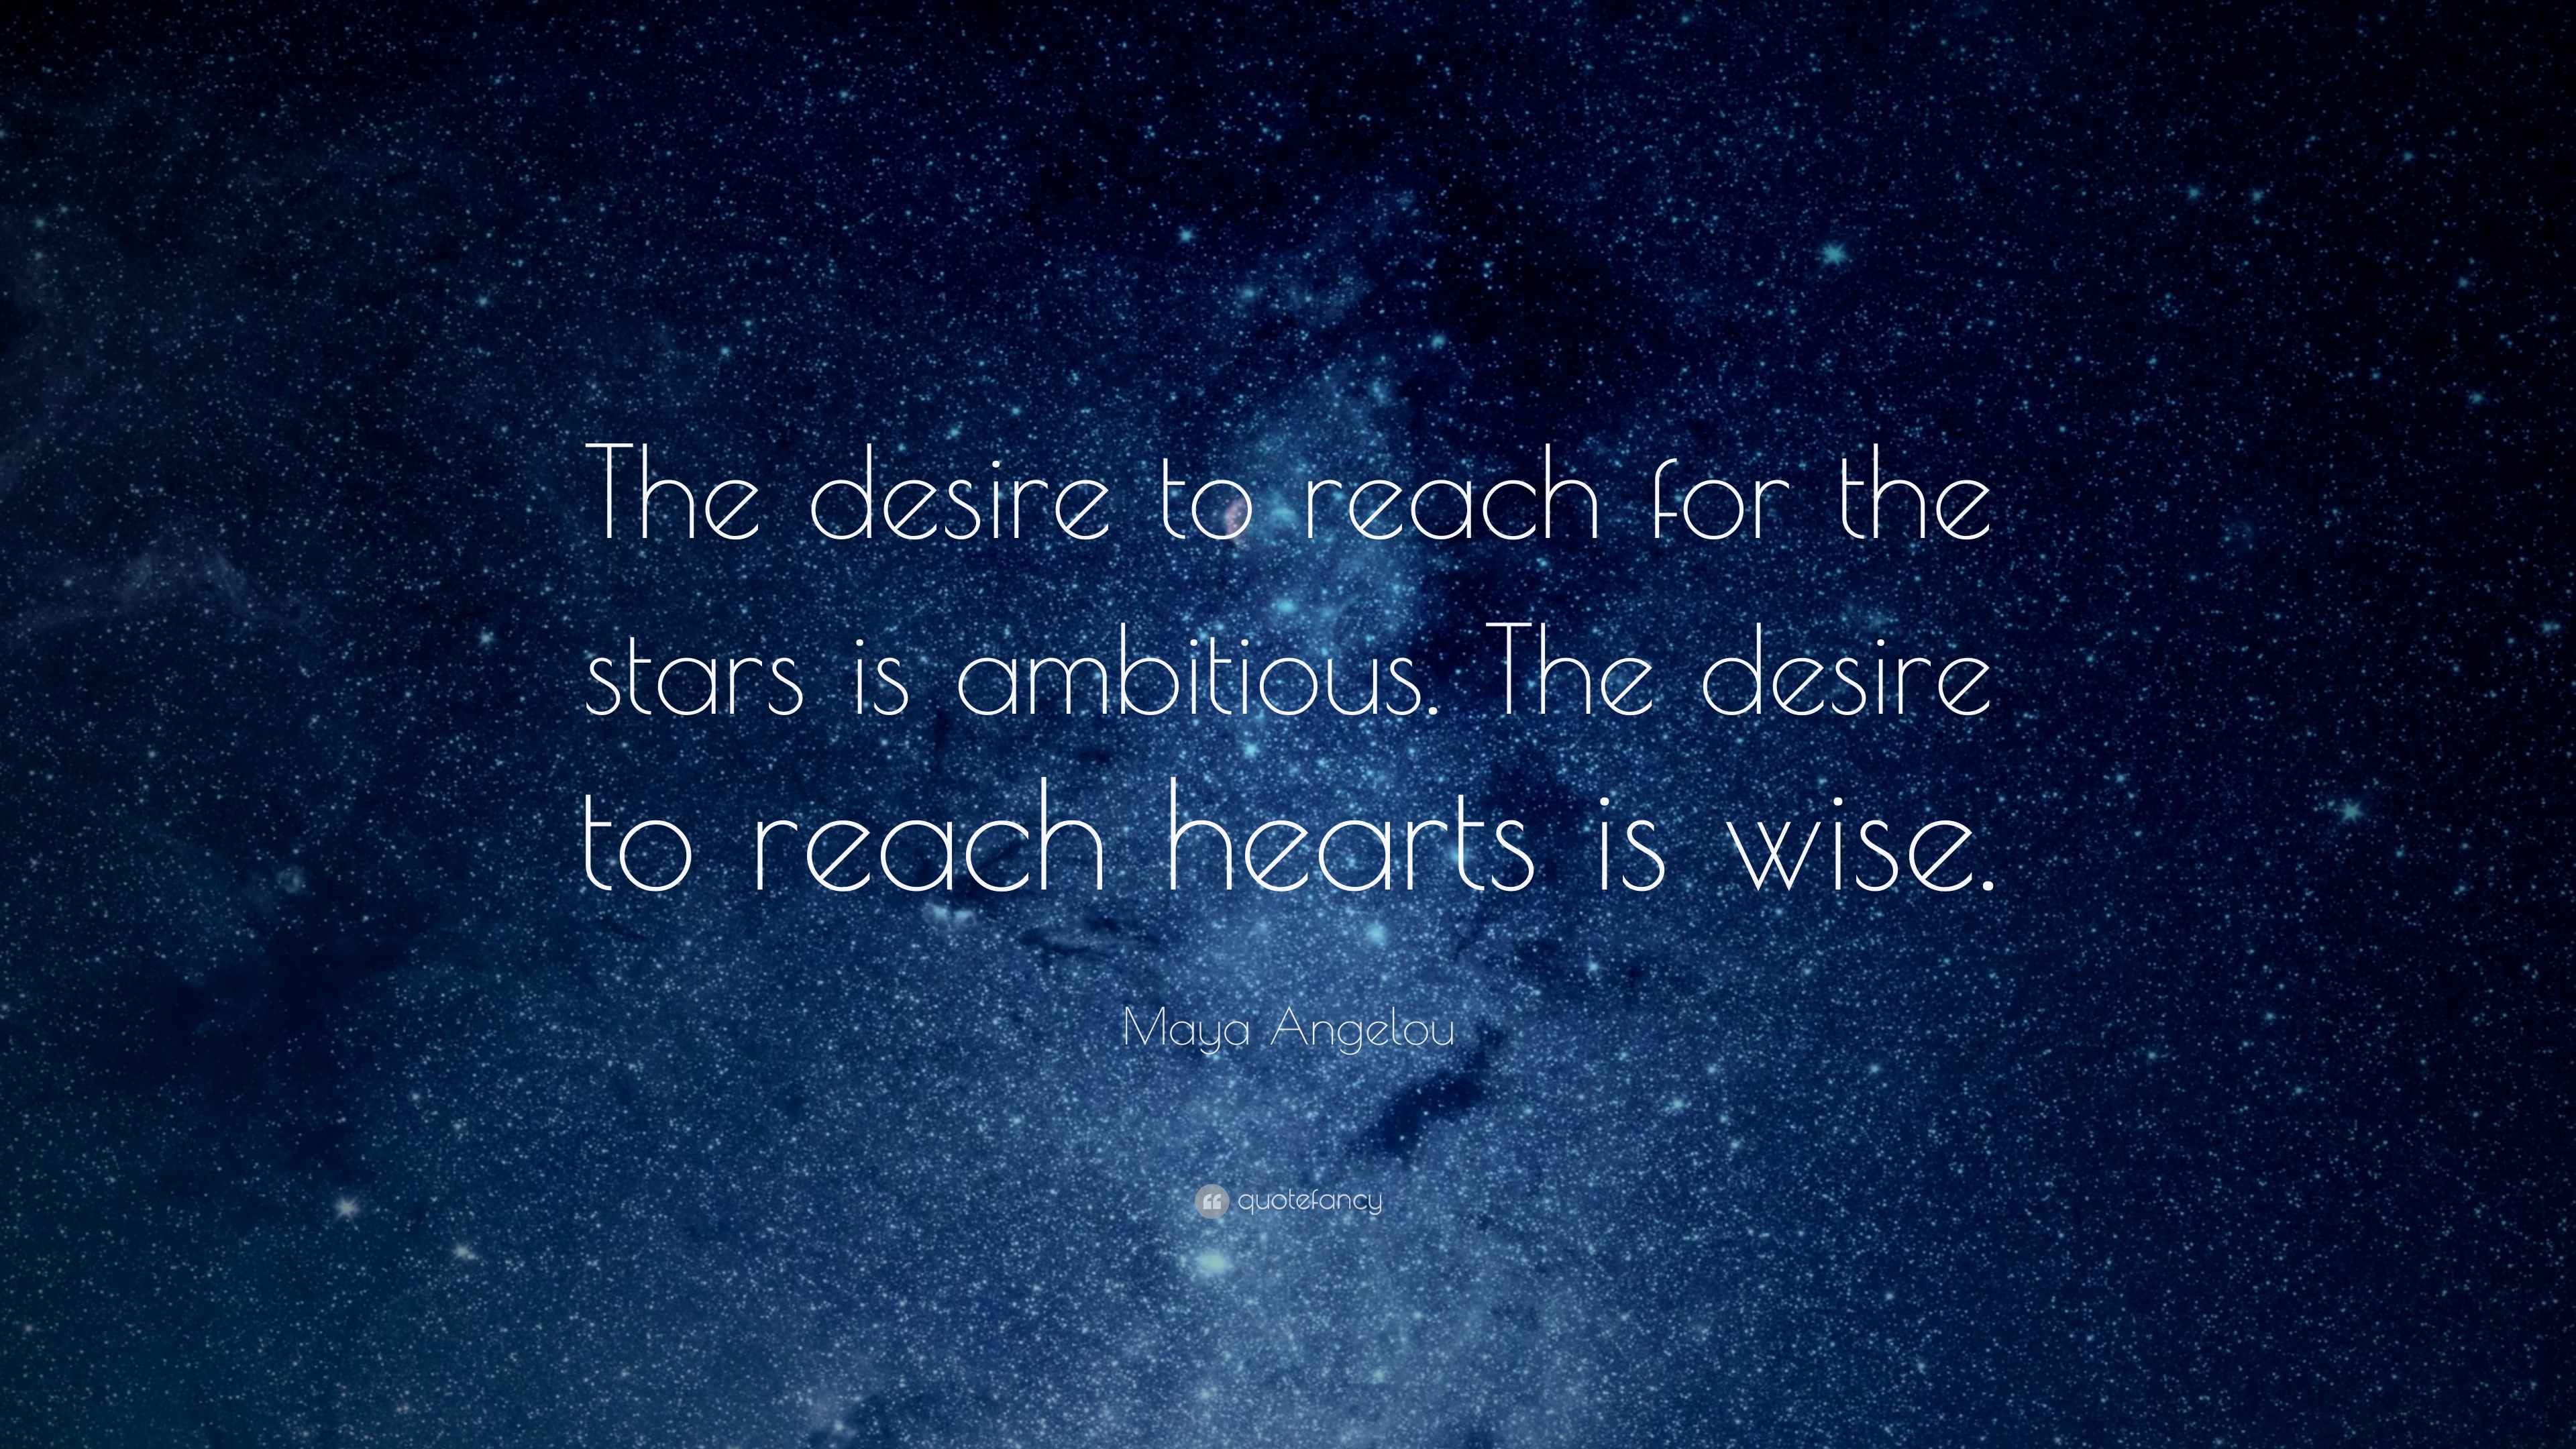 Maya Angelou Quote The Desire To Reach For The Stars Is Ambitious